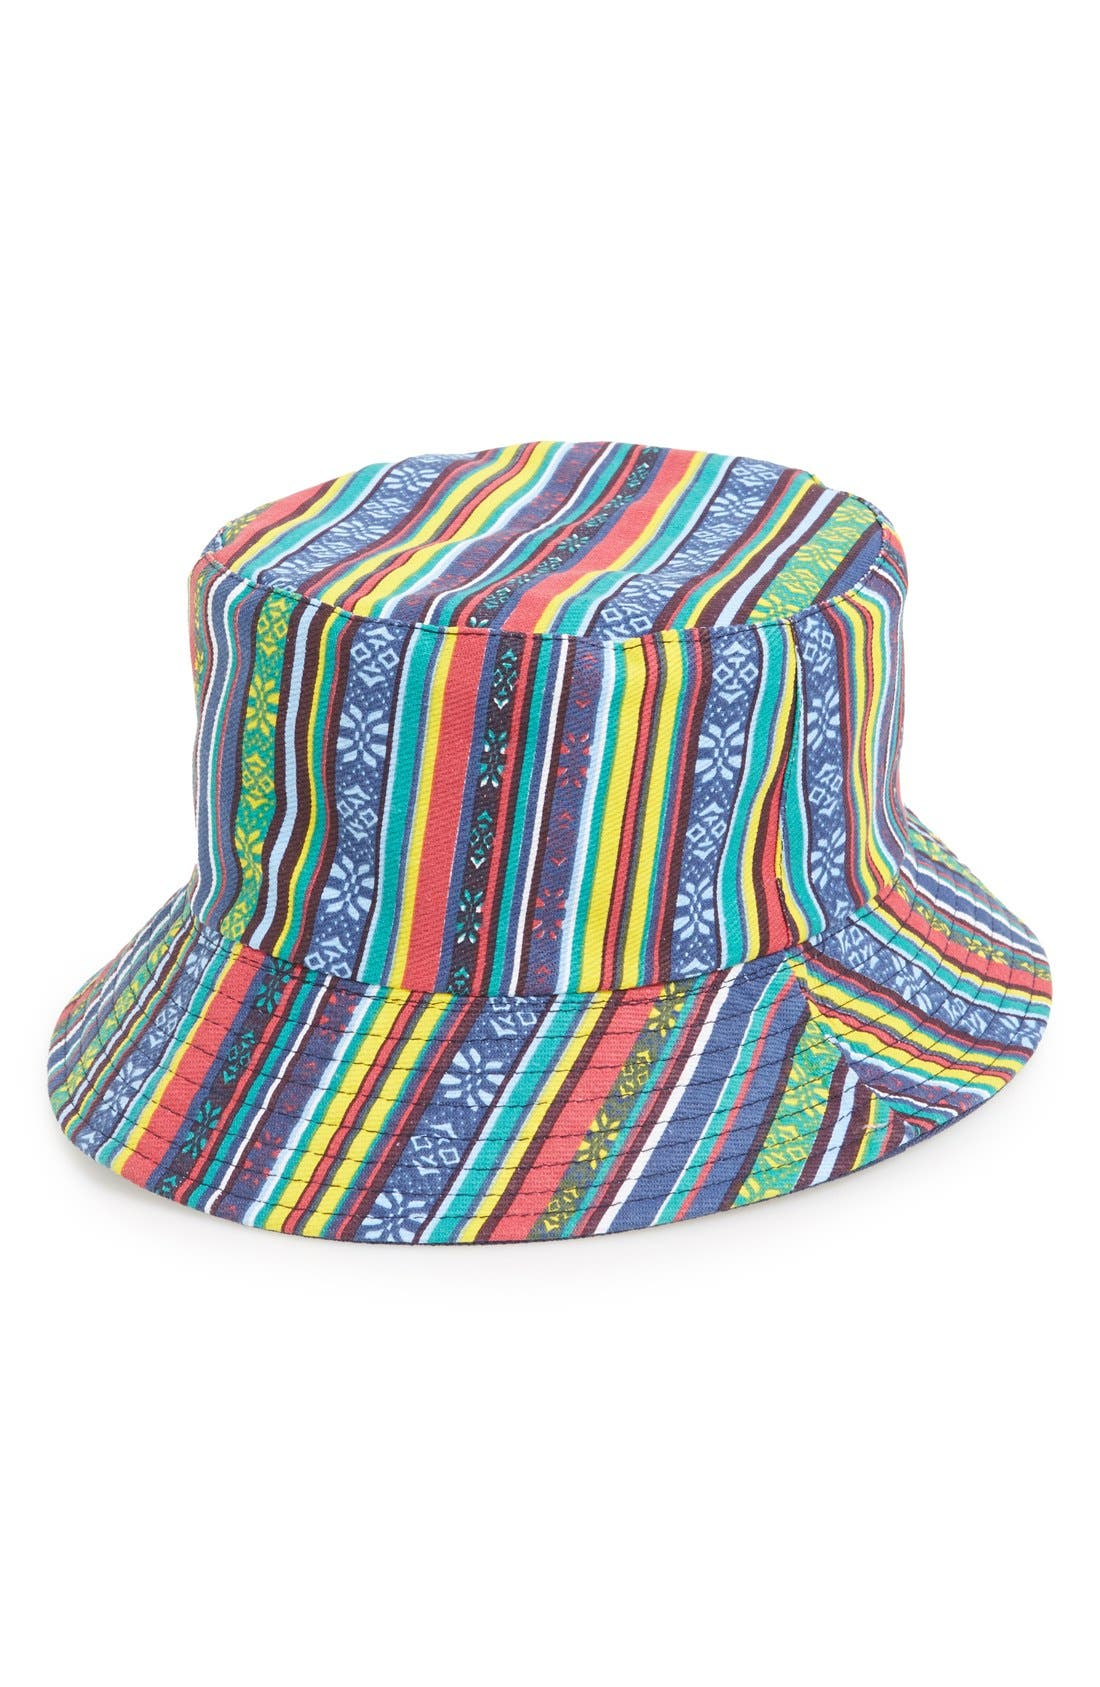 Alternate Image 1 Selected - Amici Accessories Graphic Bucket Hat (Juniors)